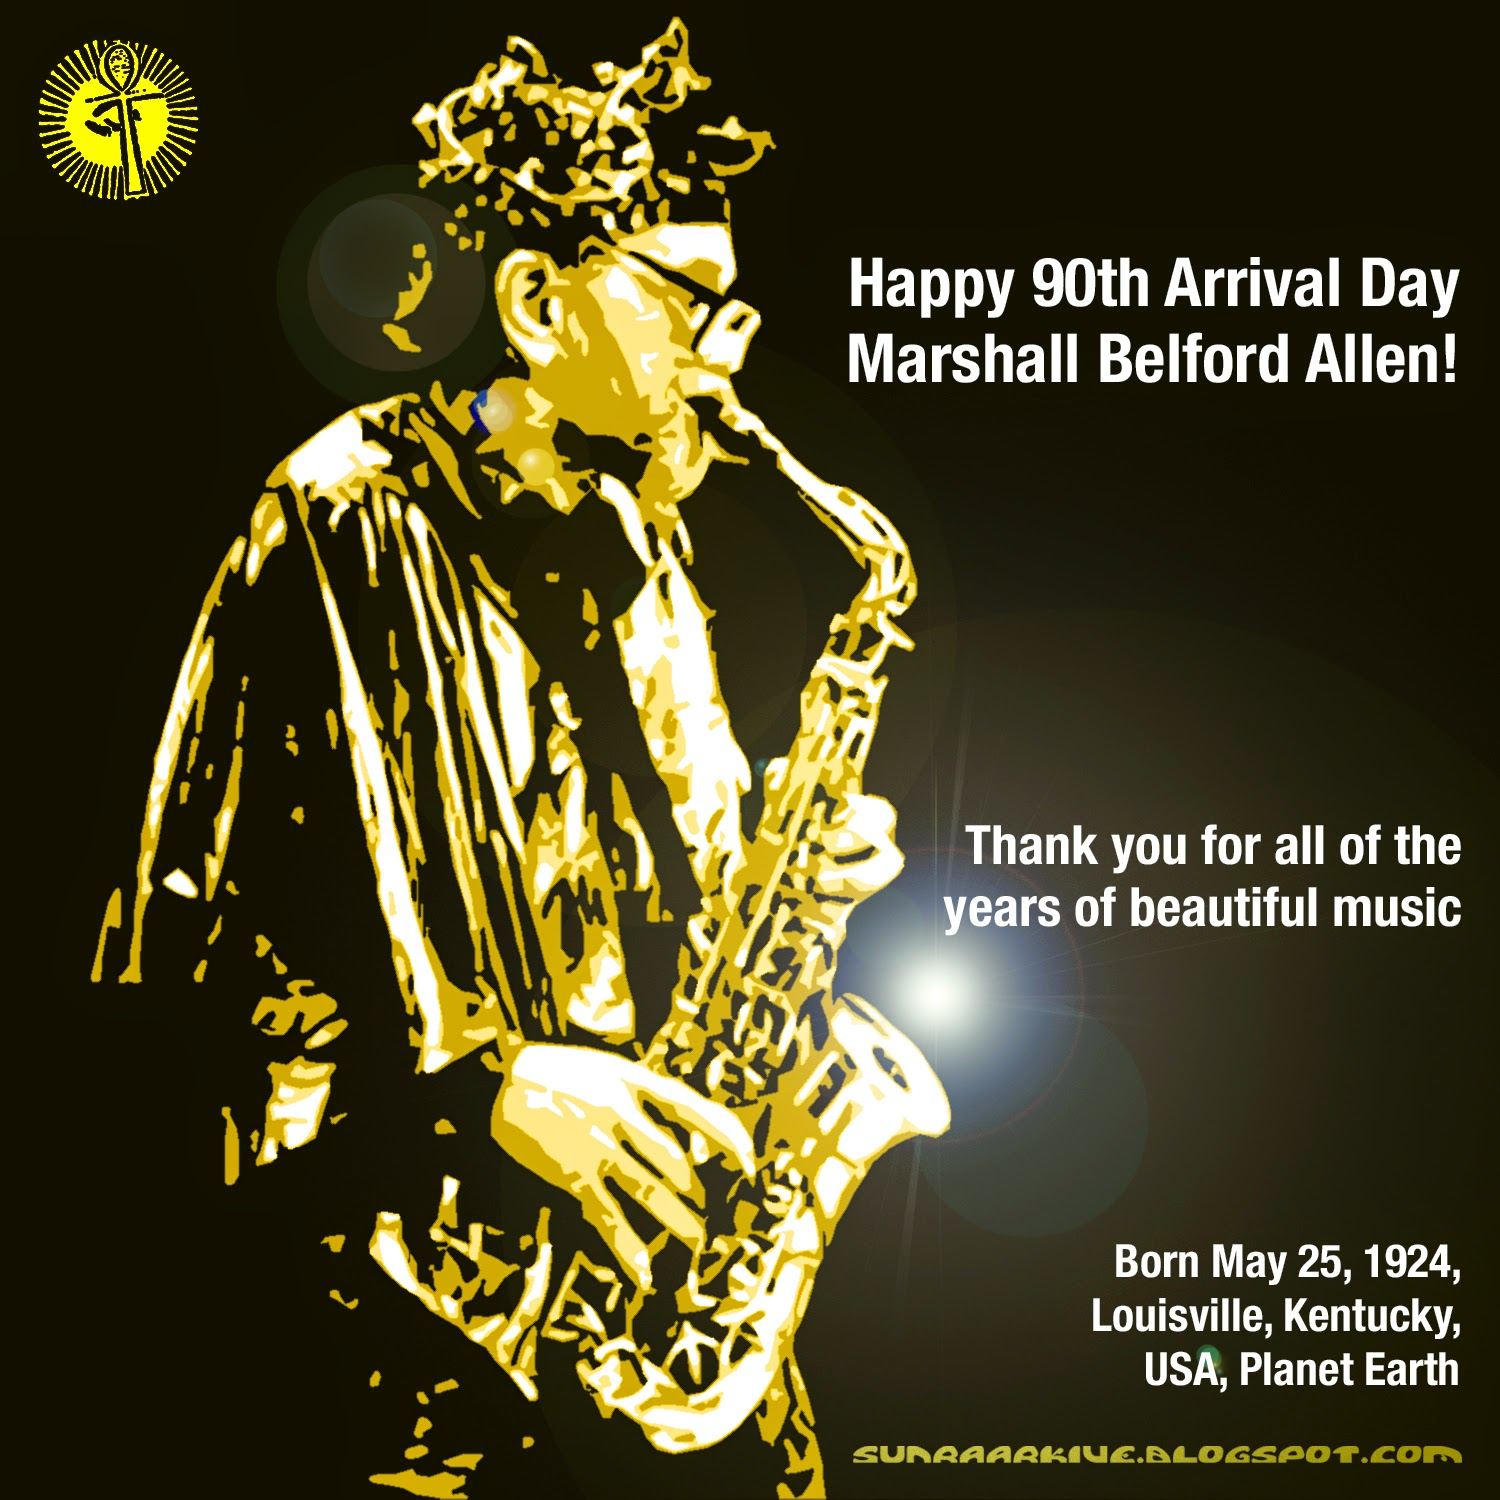 Happy 90th Arrival Day to the Sun Ra Arkestra's Marshall Belford Allen!